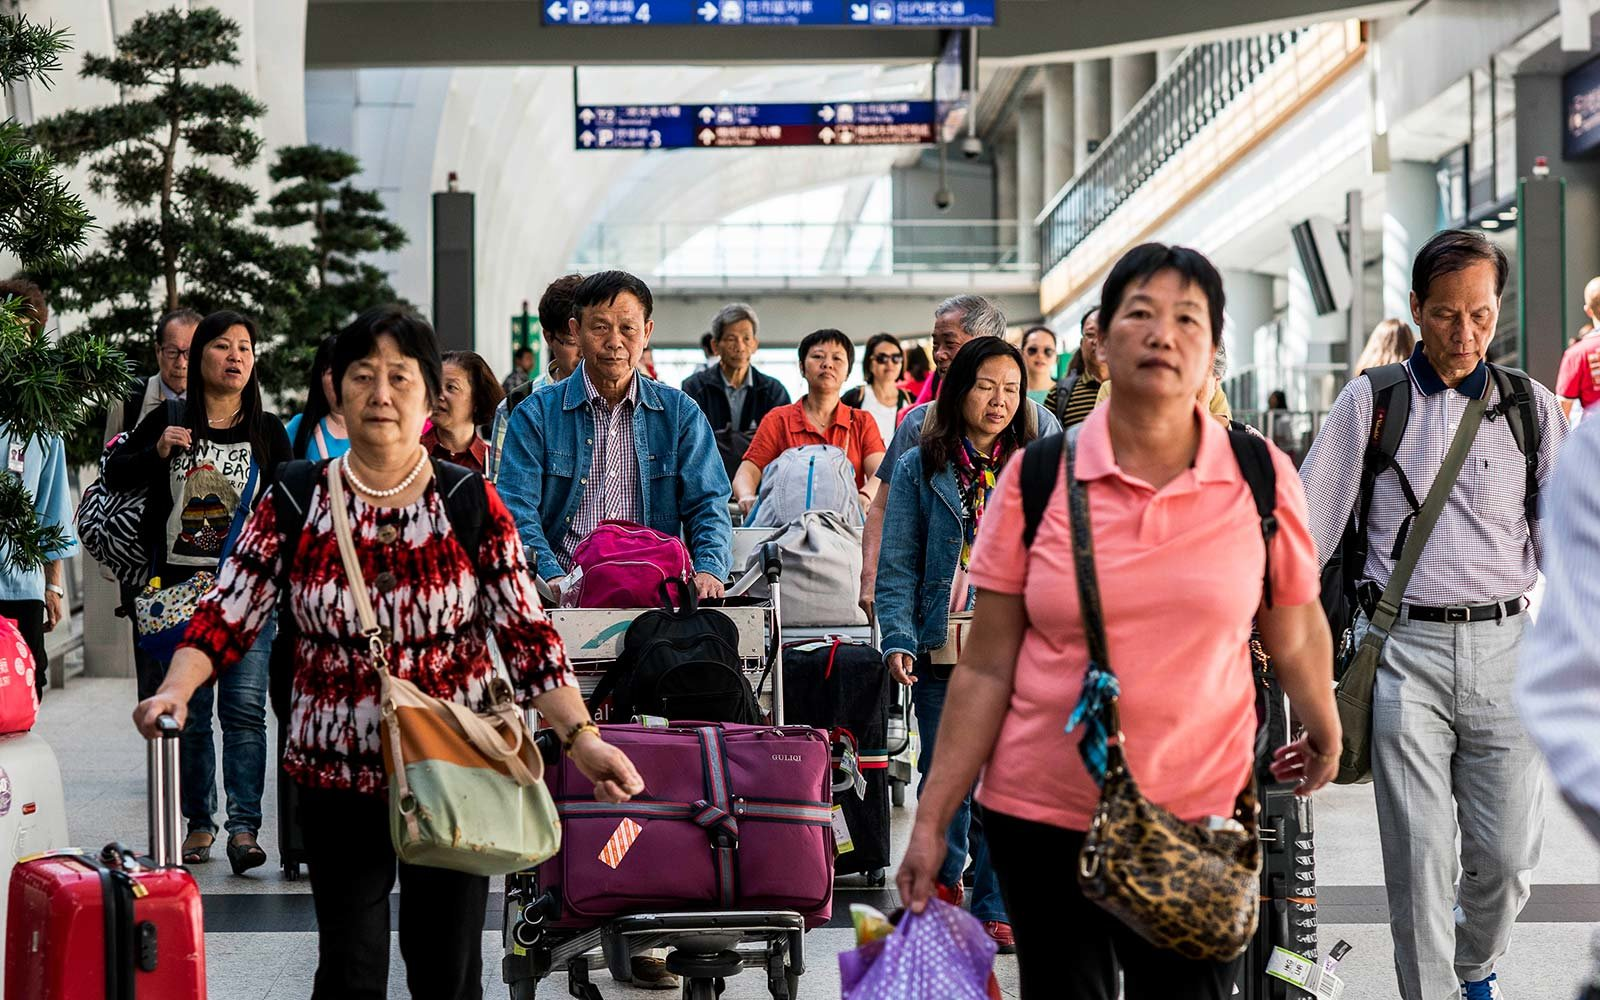 Airport luggage travel check-in counter suitcase family